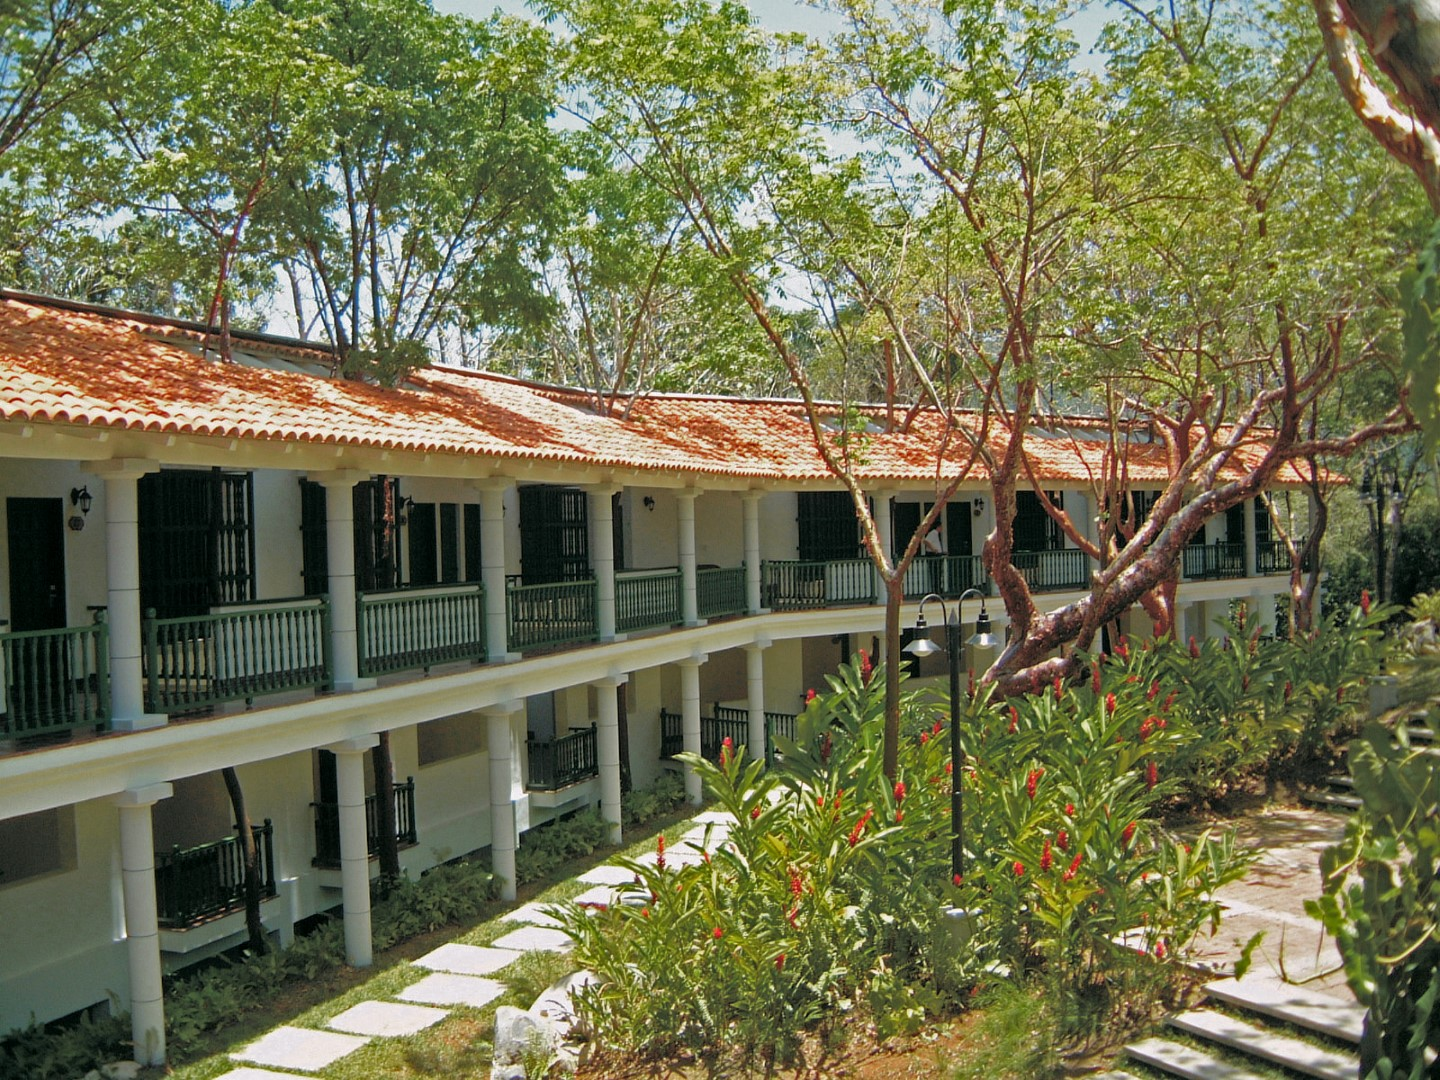 Accommodation at La Moka hotel in Las Terrazas, Cuba